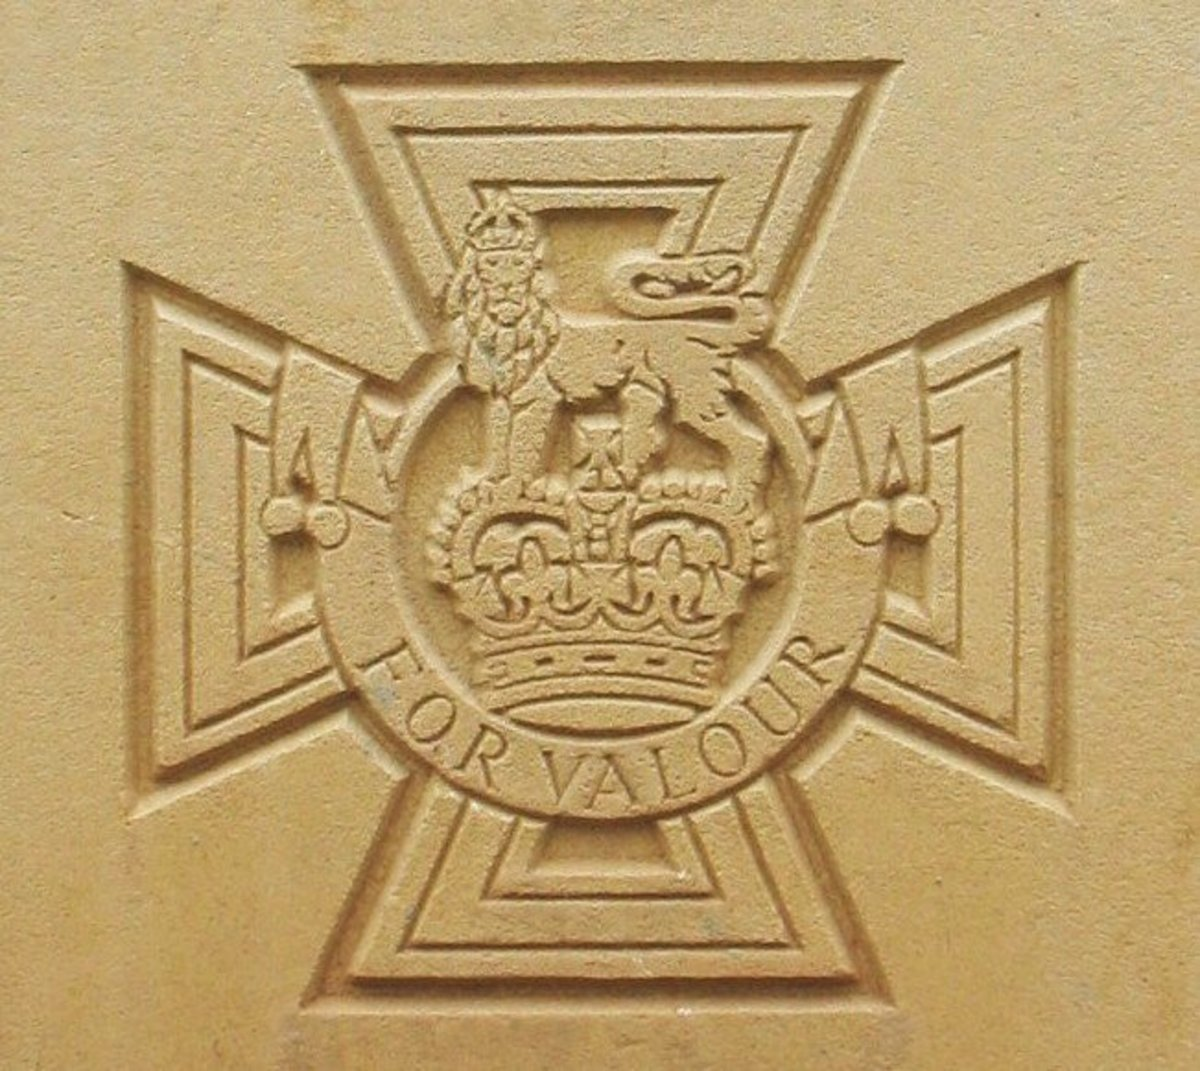 Victoria Cross as it appears on Commonwealth War Graves Commission headstones.